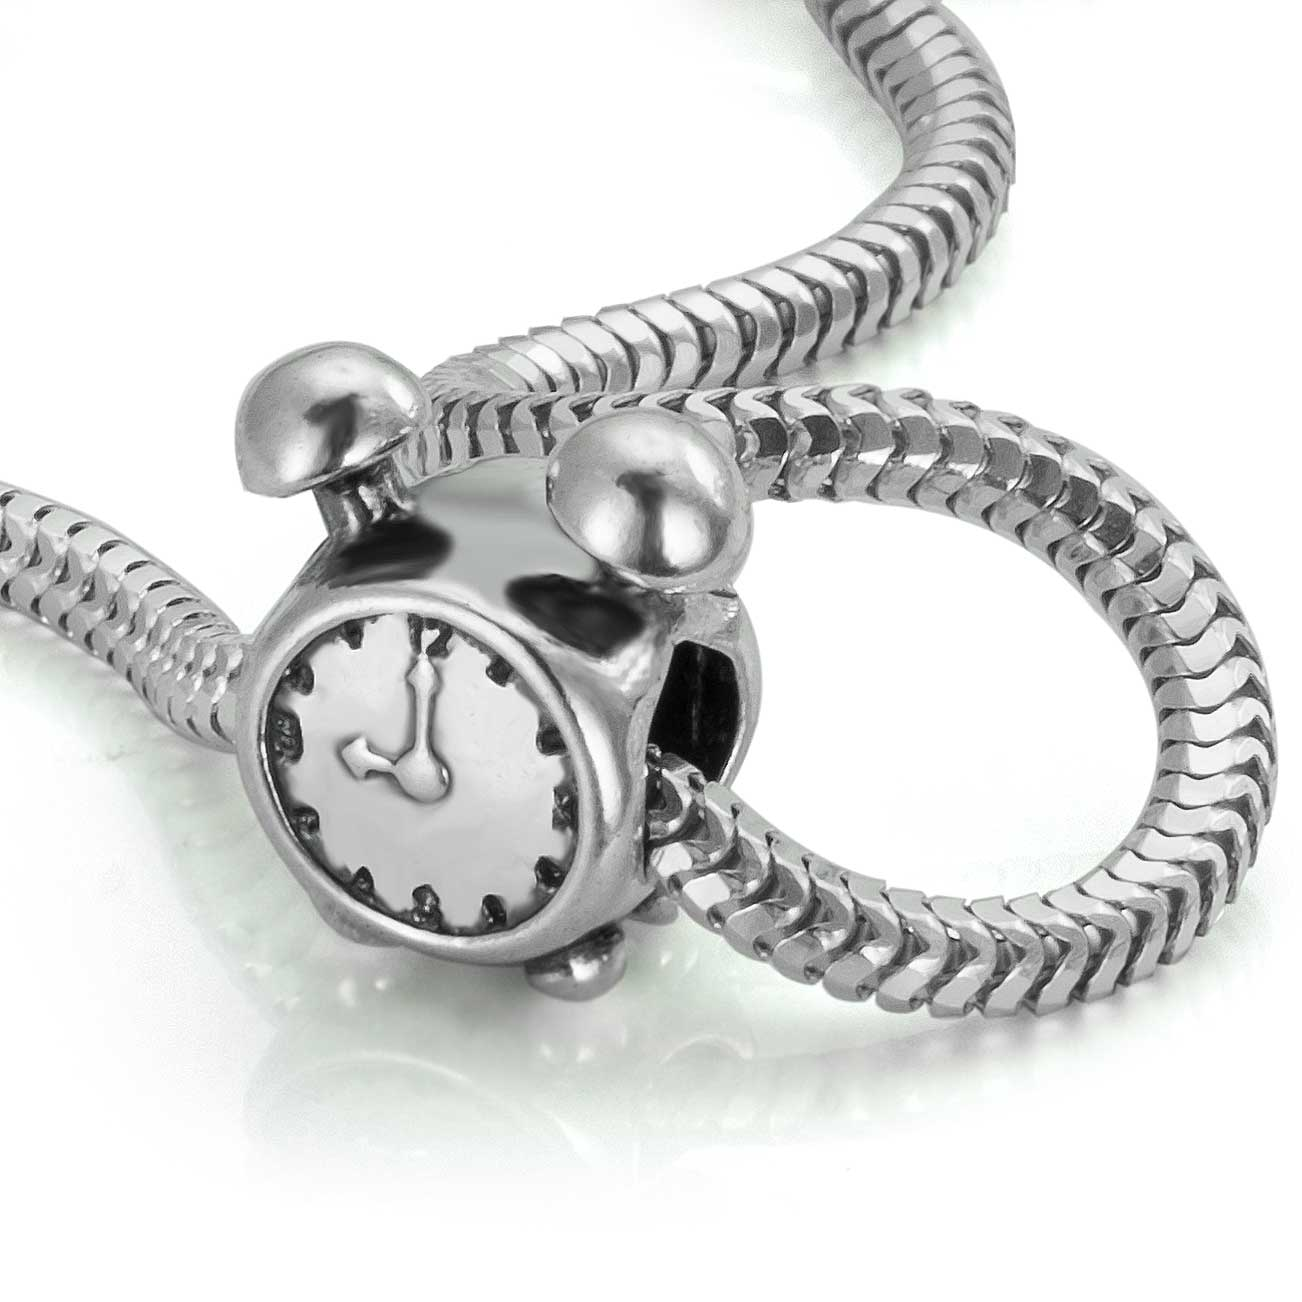 Alarm Clock And Clock Silver Bead 925er For Bracelets